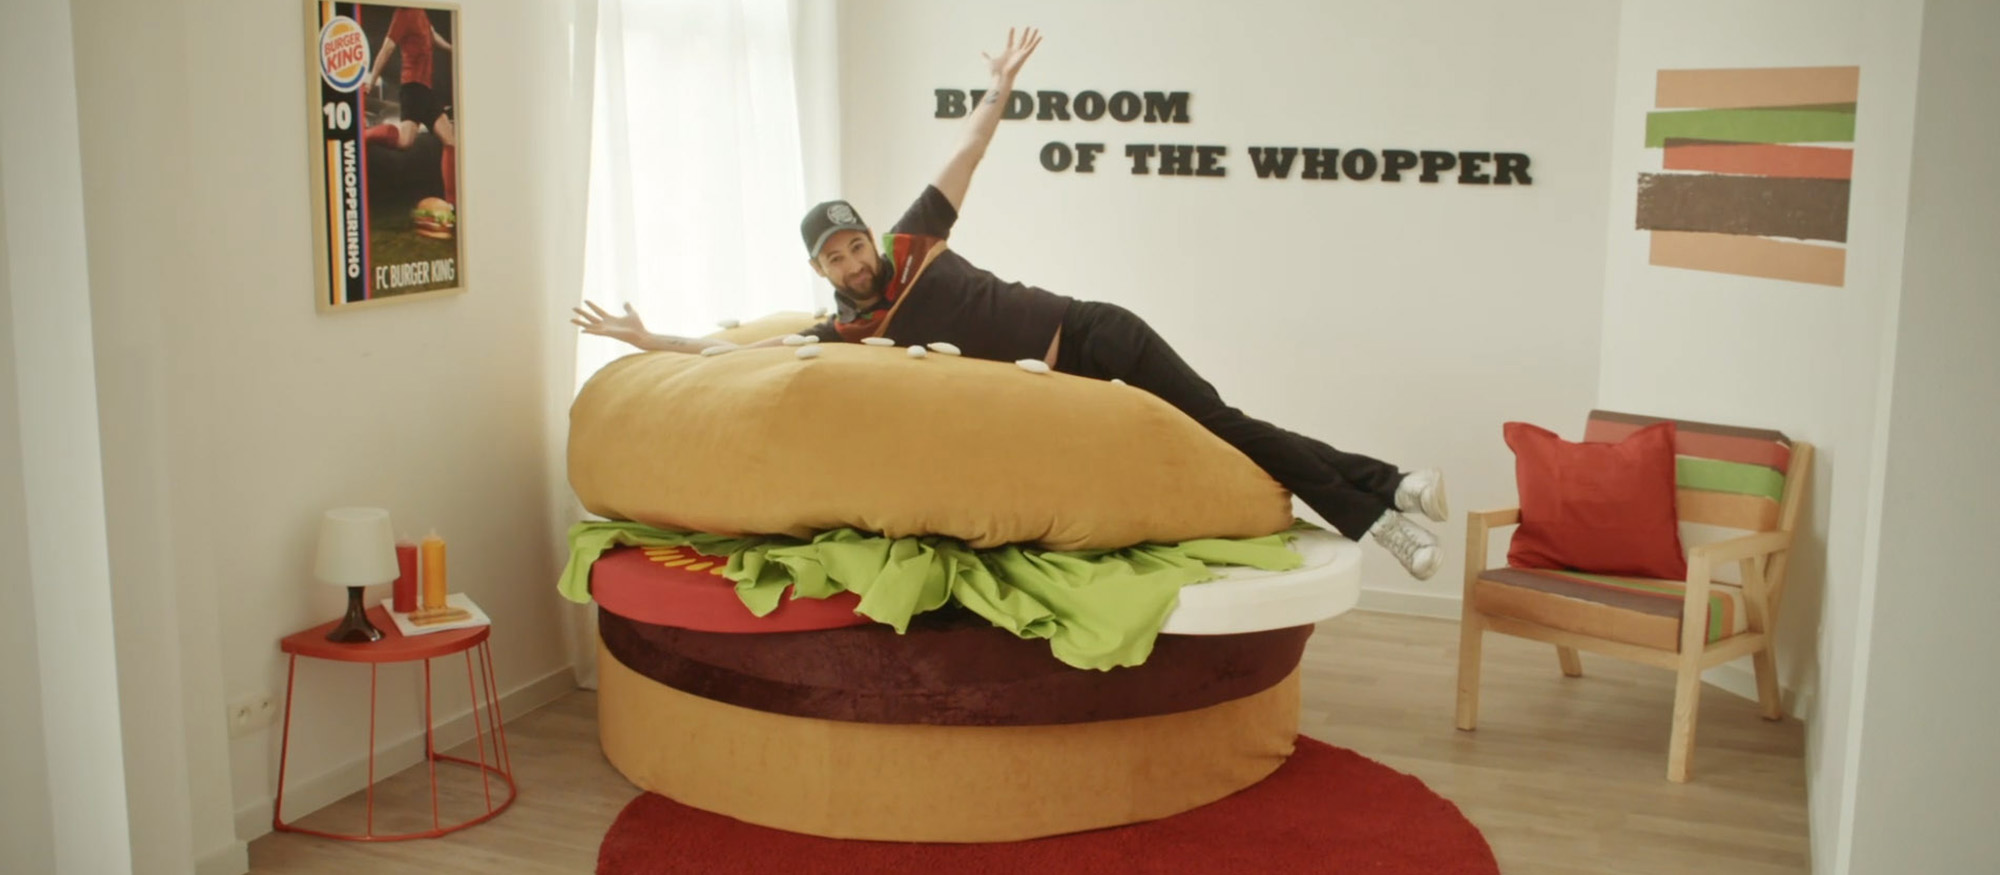 Burger King Want To Give A Lucky Customer Their Own Whopper-Inspired Apartment… There's Just One Catch!